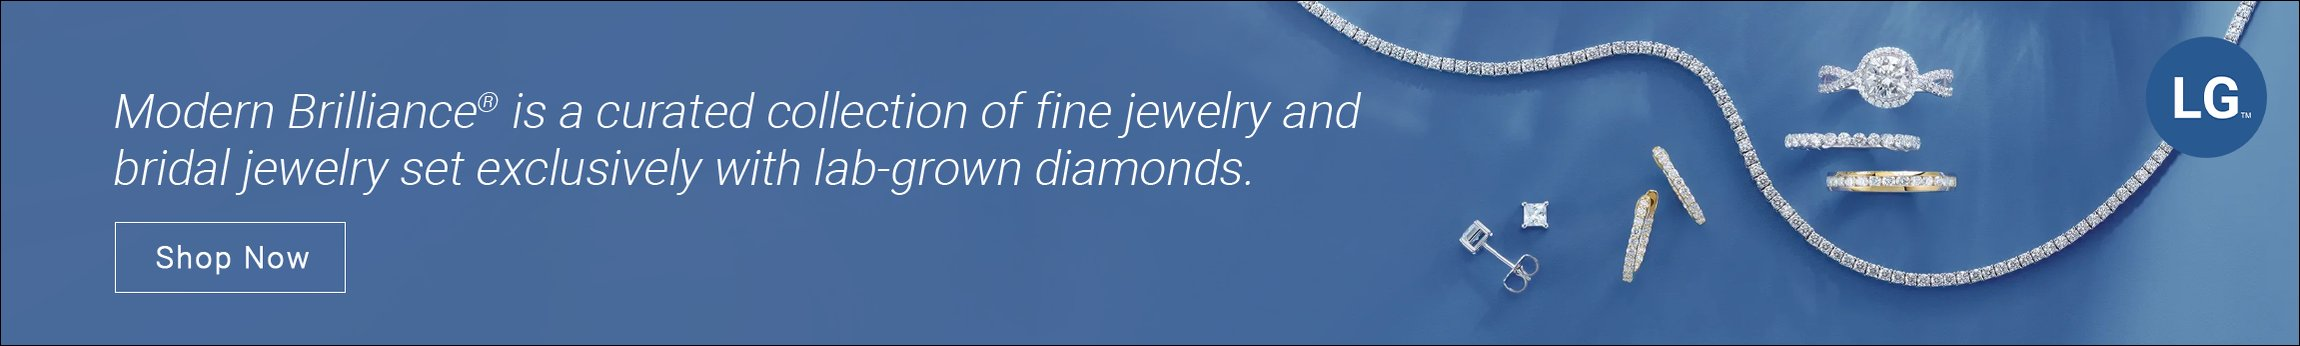 Modern Brilliance™ | Lab-Grown Jewelry Collection